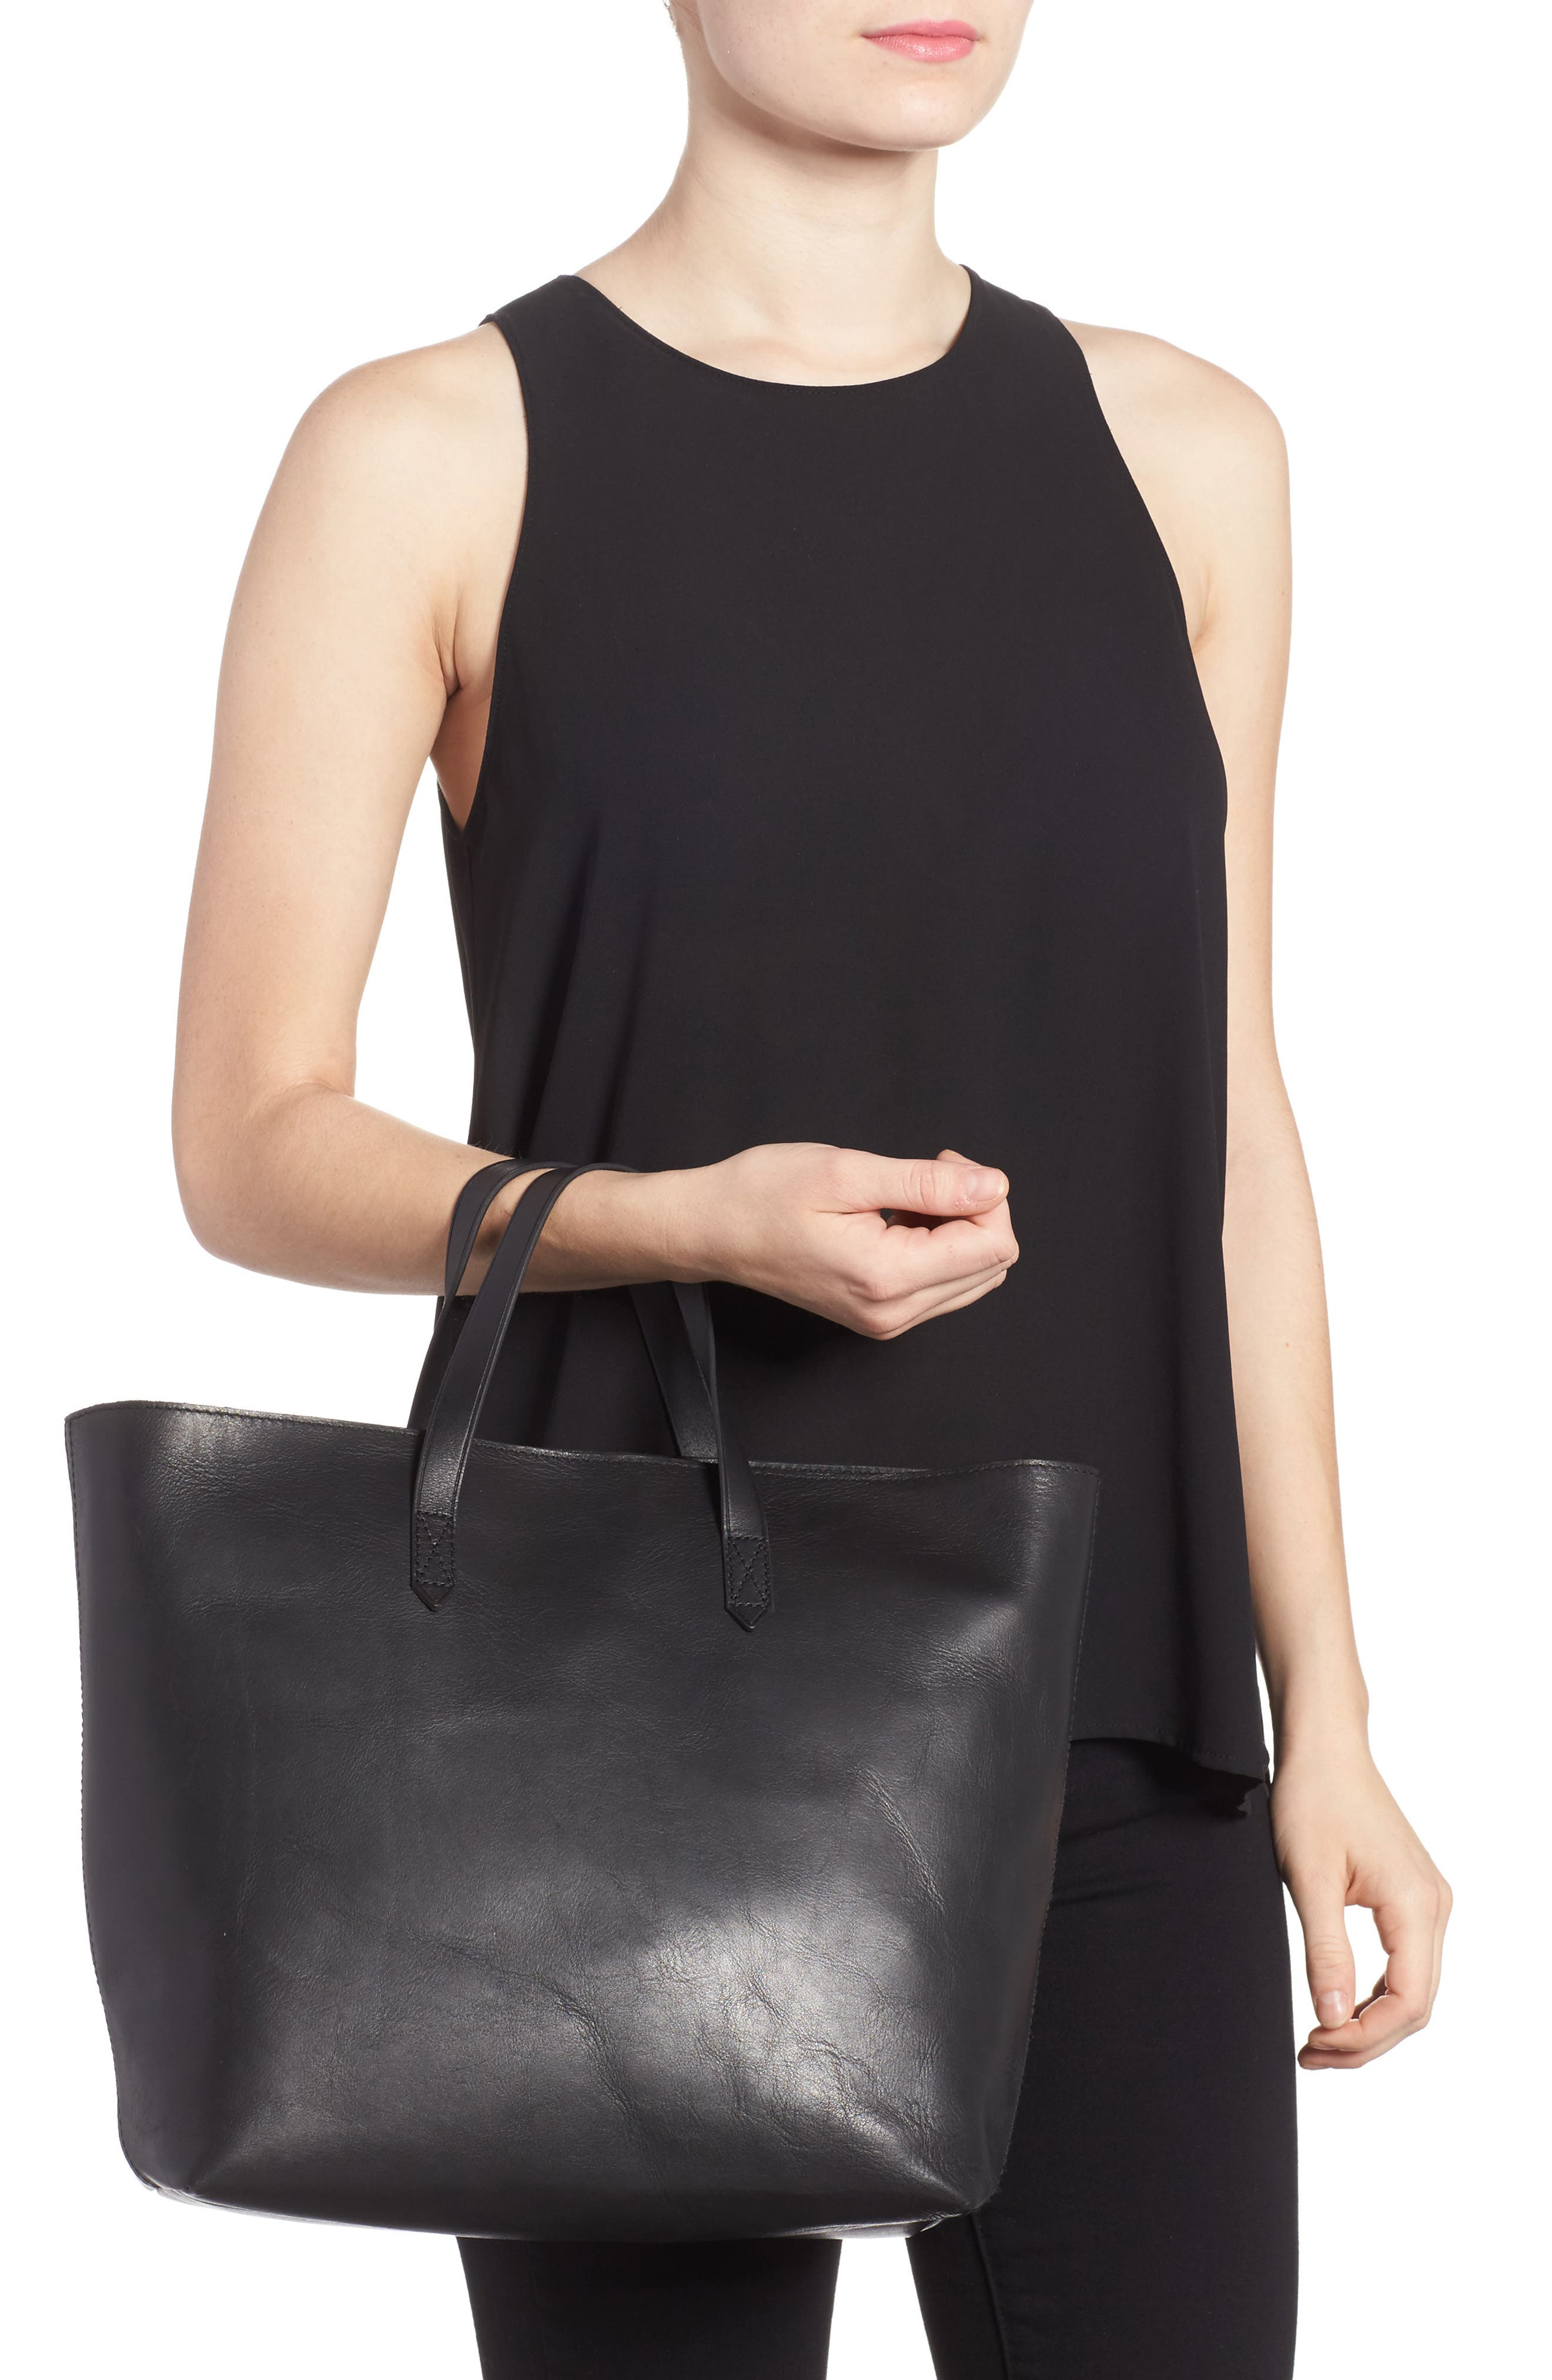 MADEWELL, Zip Top Transport Leather Carryall, Alternate thumbnail 2, color, TRUE BLACK